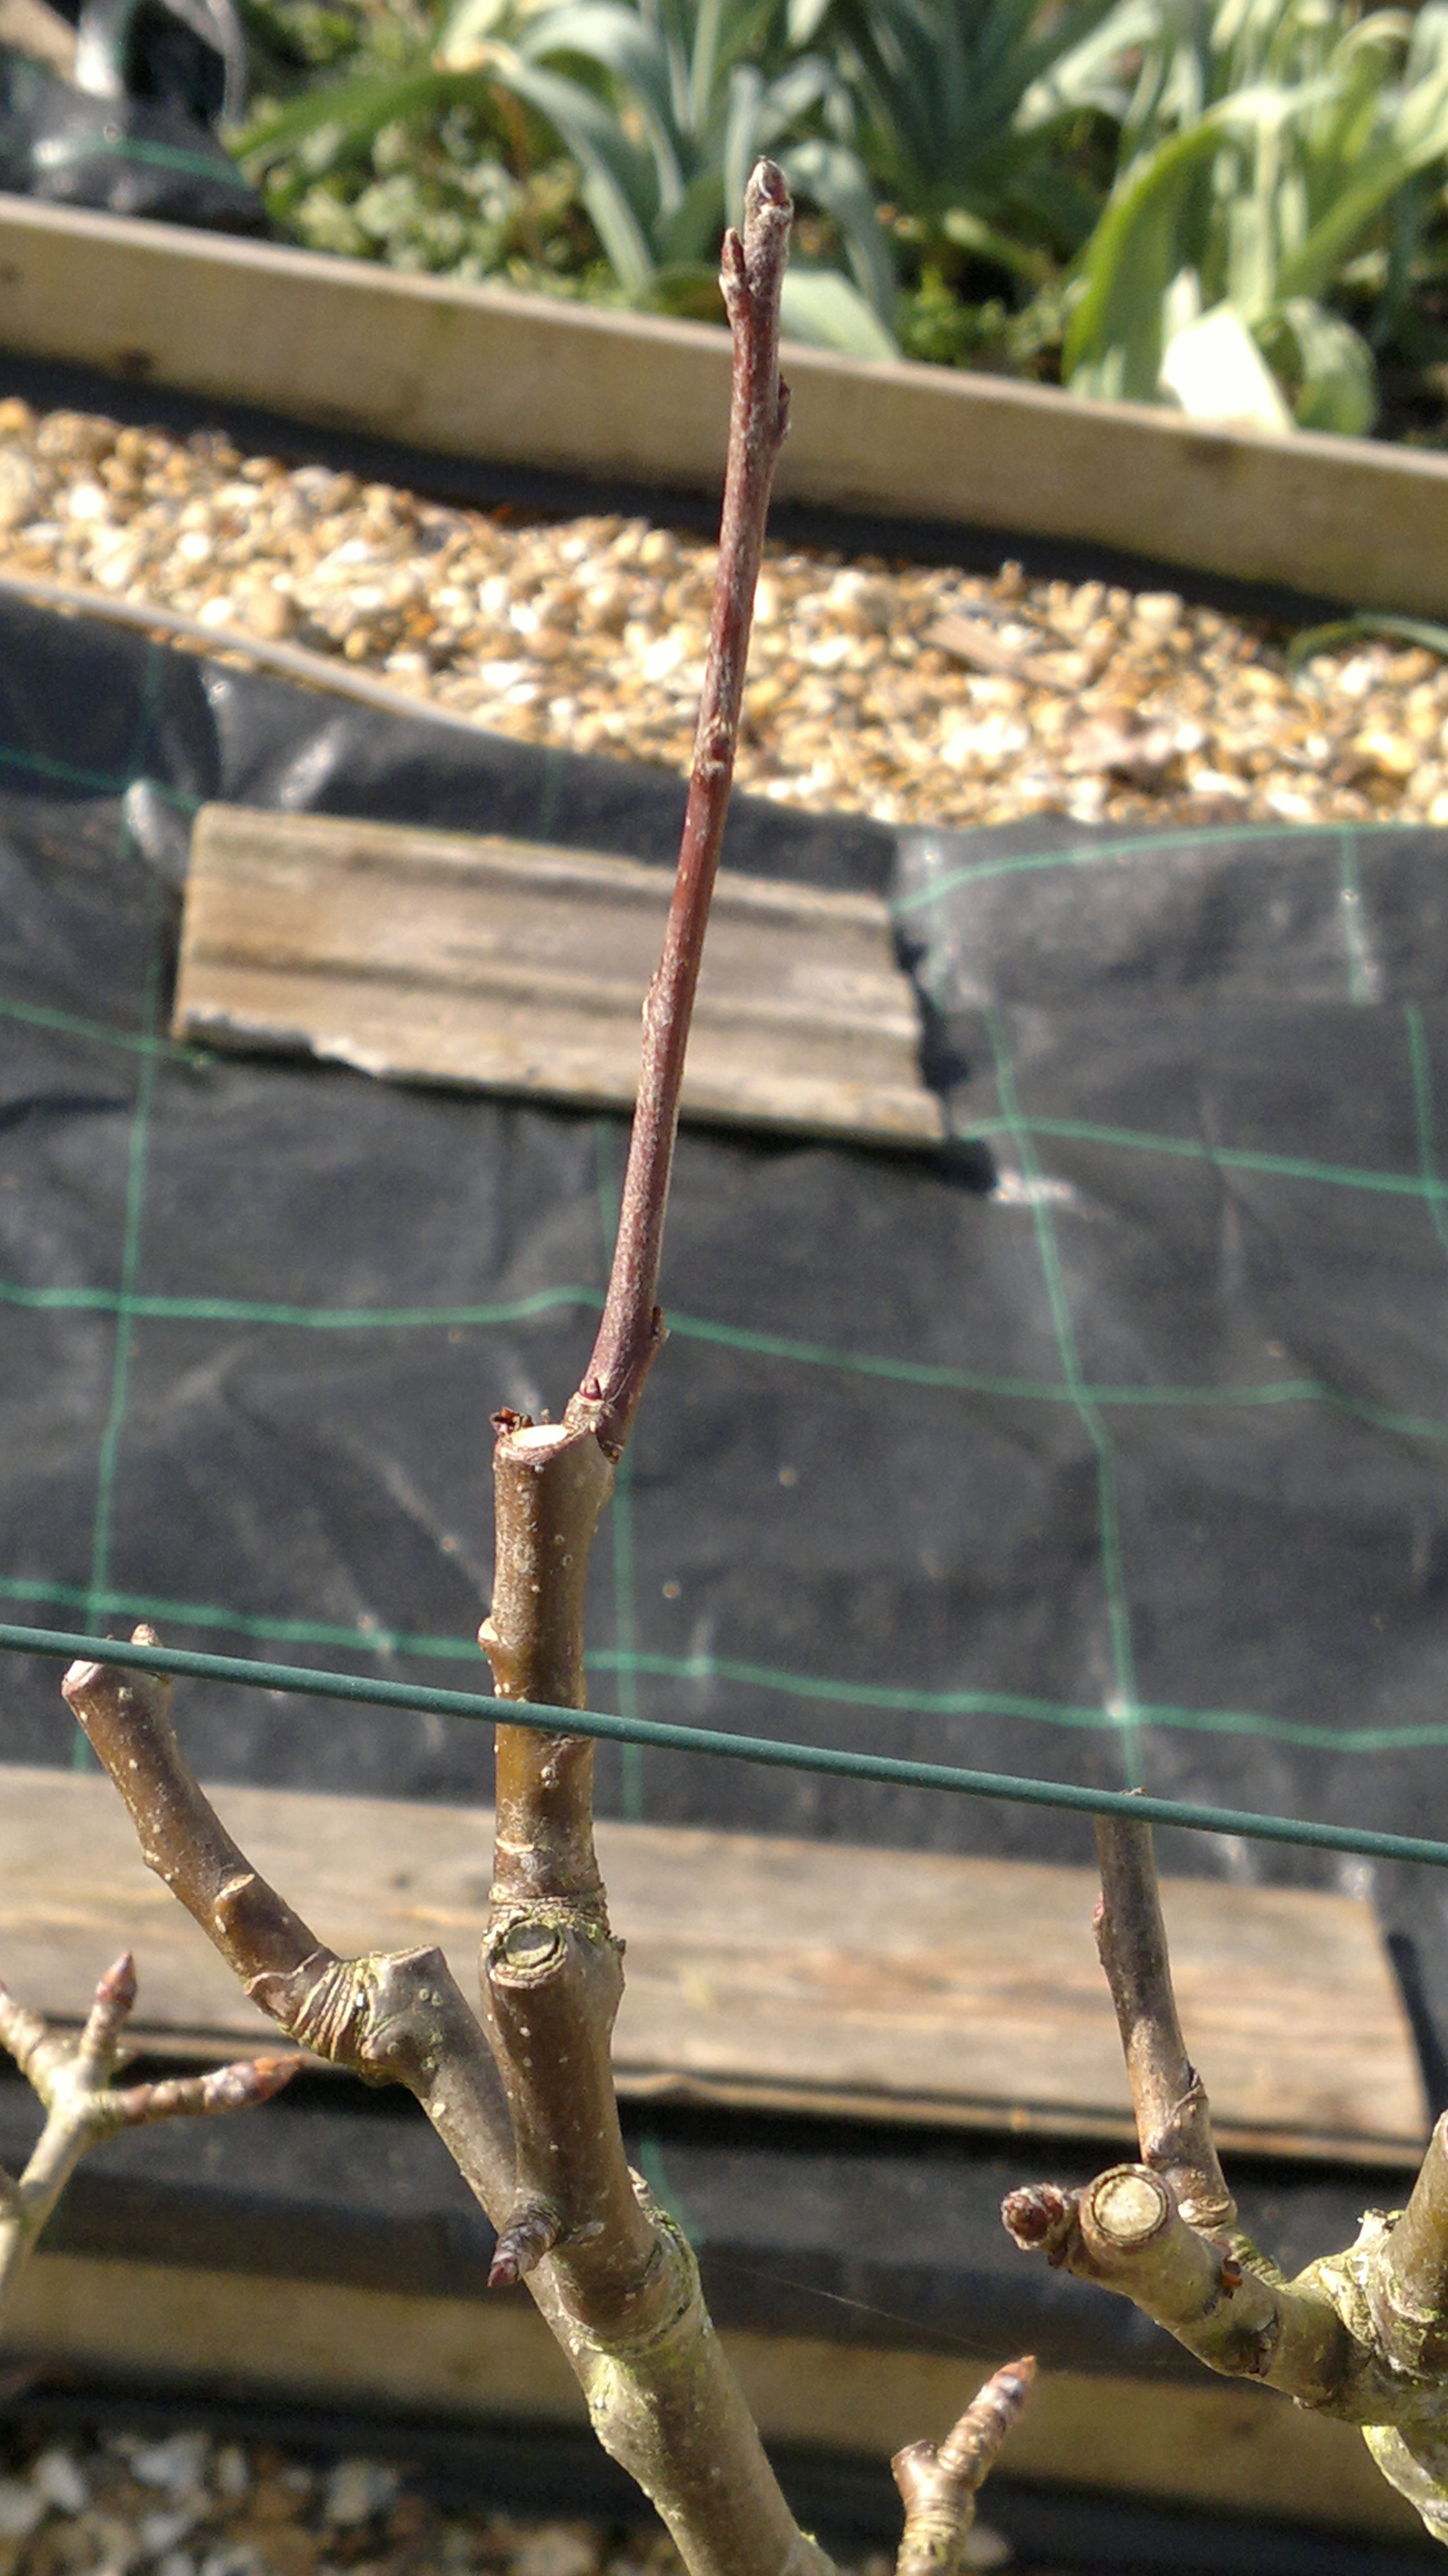 Short length of secondary growth terminating in a fruit bud